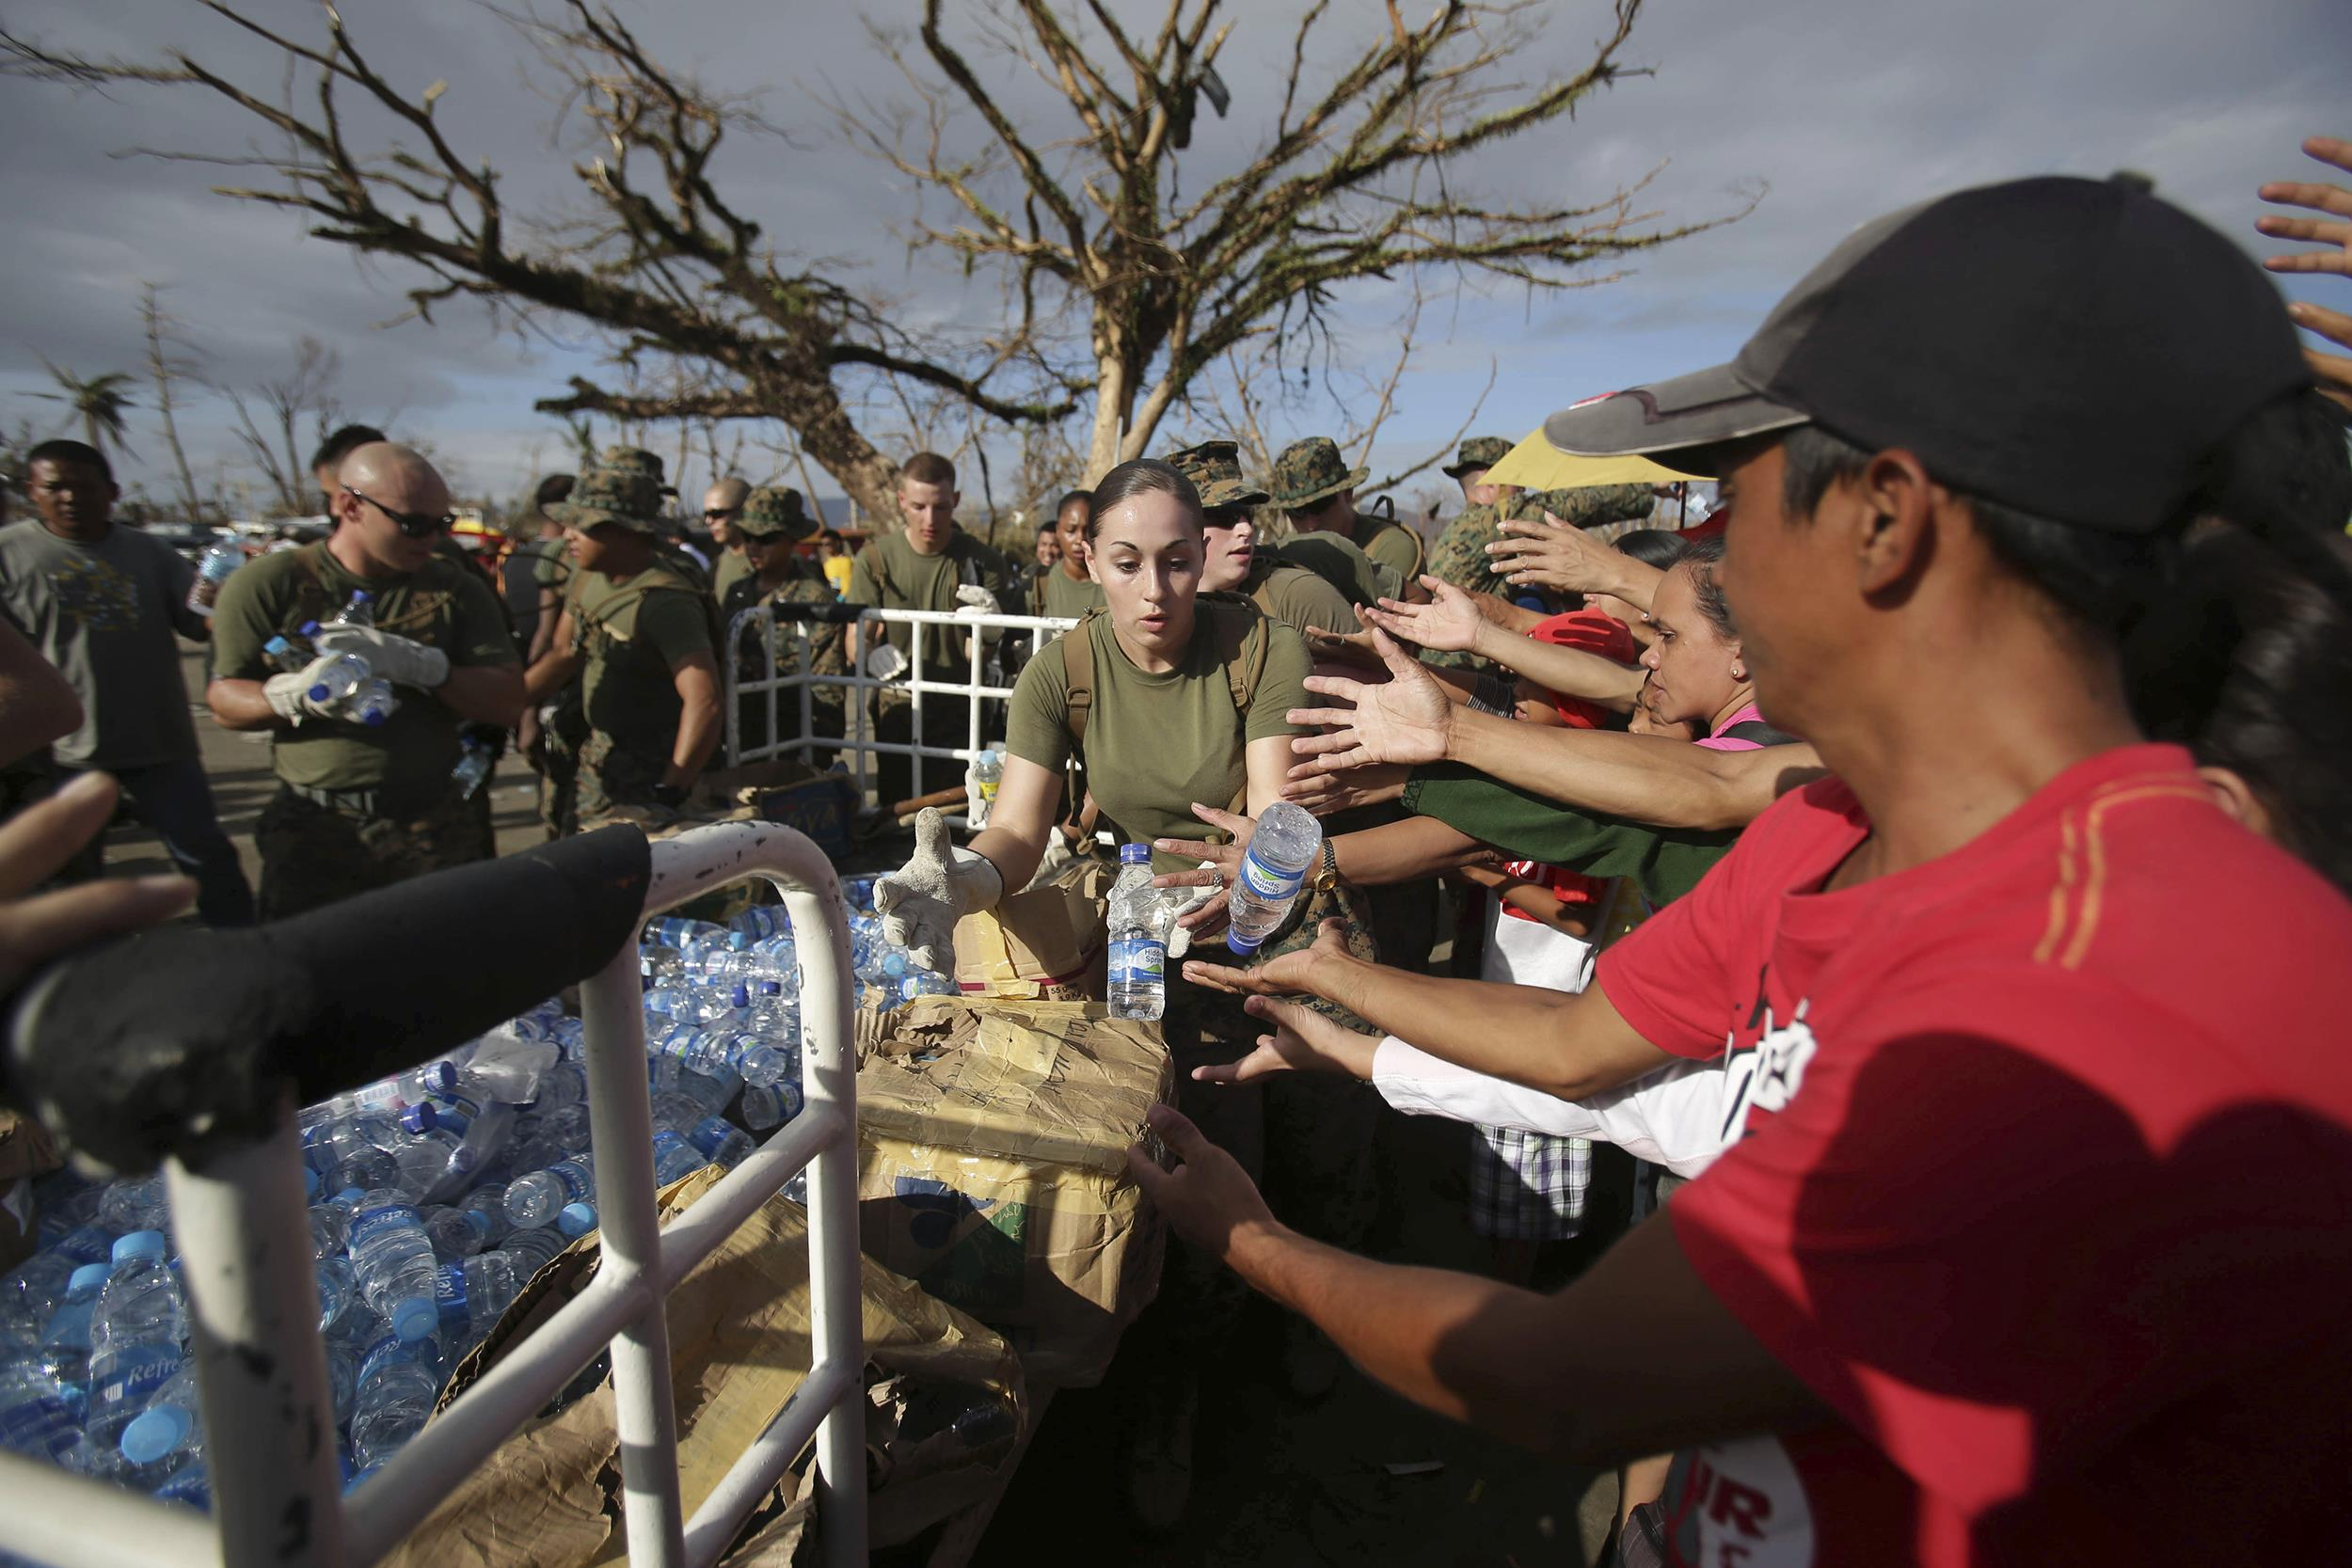 Image: U.S. Marines hand out bottled water to typhoon survivors waiting for flight out of Tacloban city,